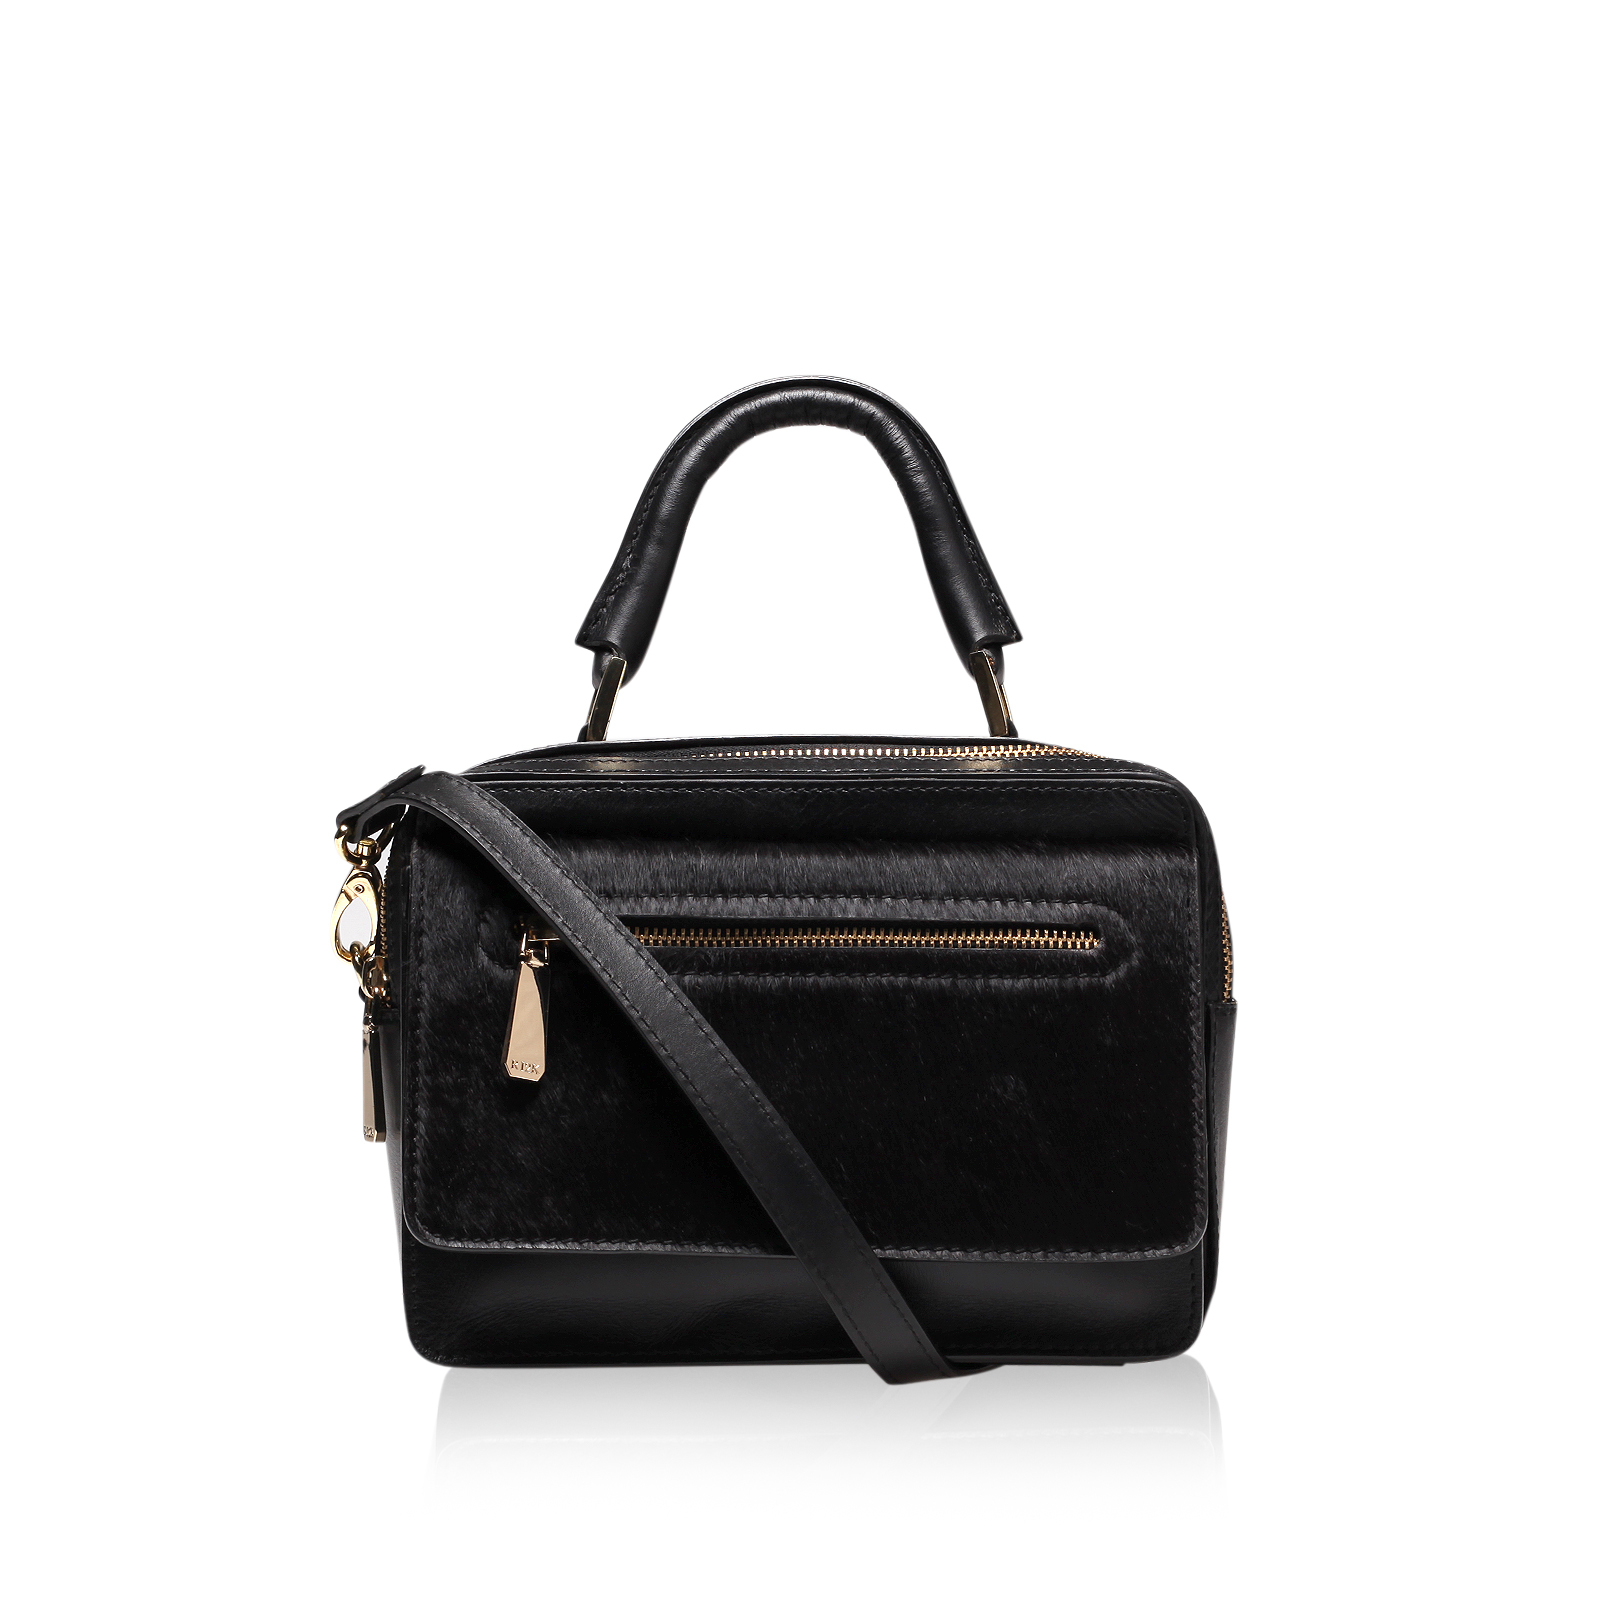 HOLLOWAY LEATHER BAG